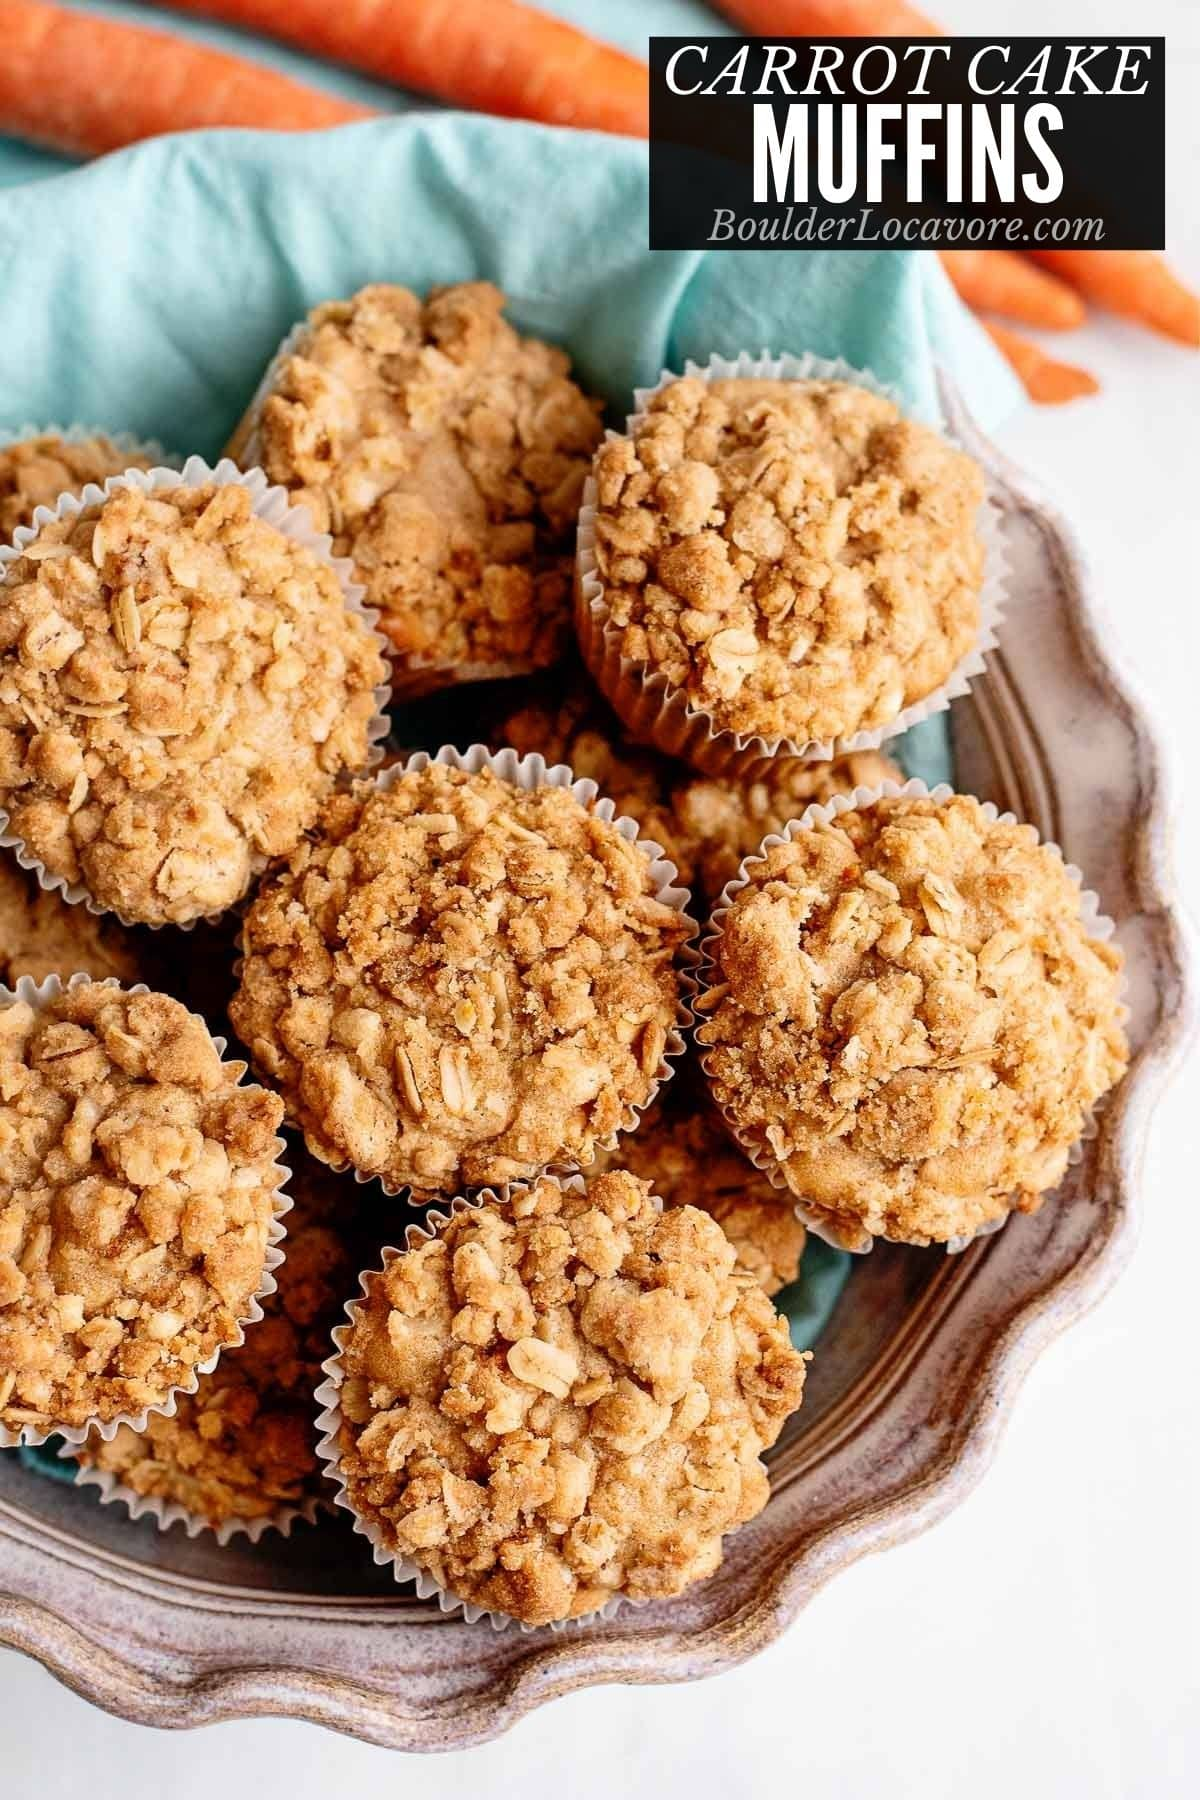 CARROT CAKE MUFFINS TITLE